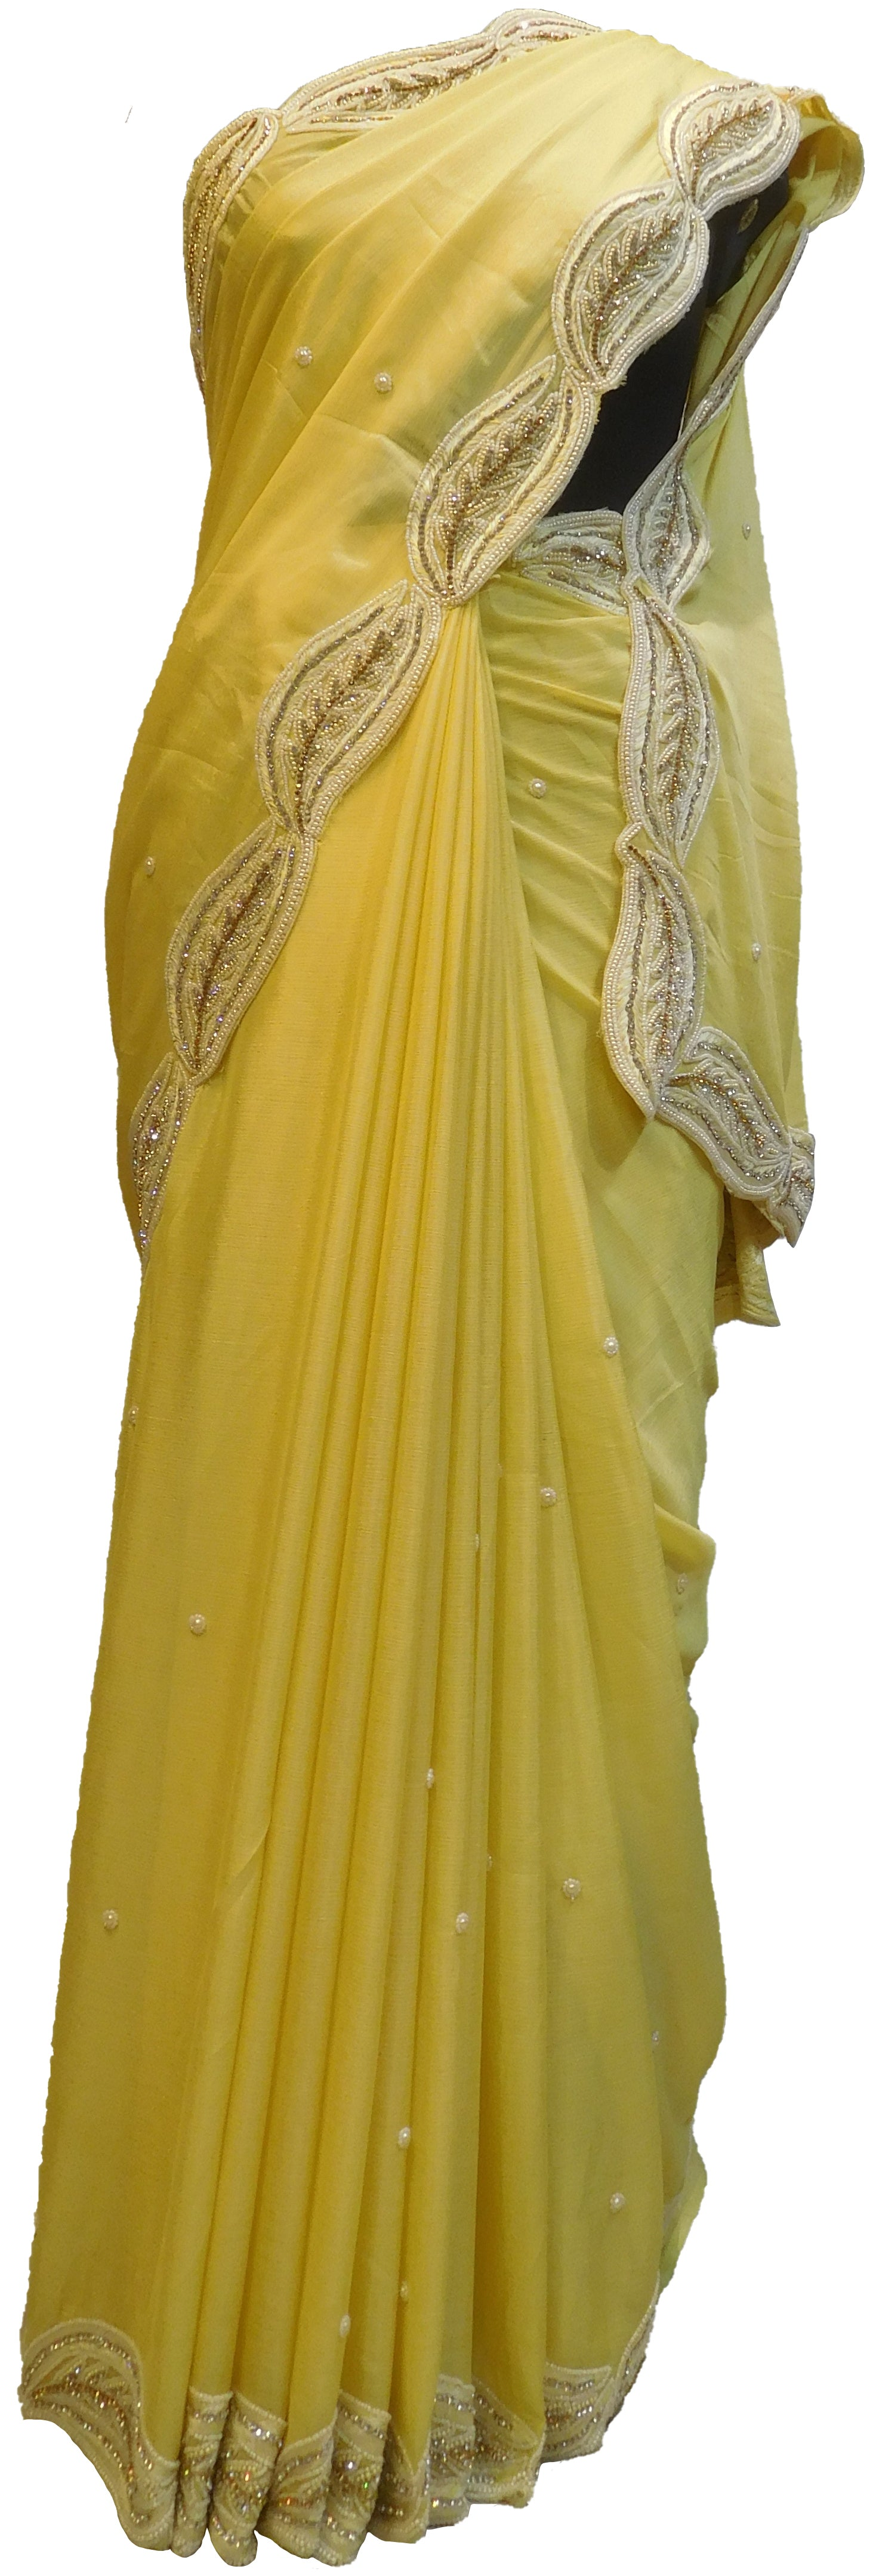 SMSAREE Yellow Designer Wedding Partywear Crepe (Chinon) Stone Thread Beads & Pearl Hand Embroidery Work Bridal Saree Sari With Blouse Piece E483